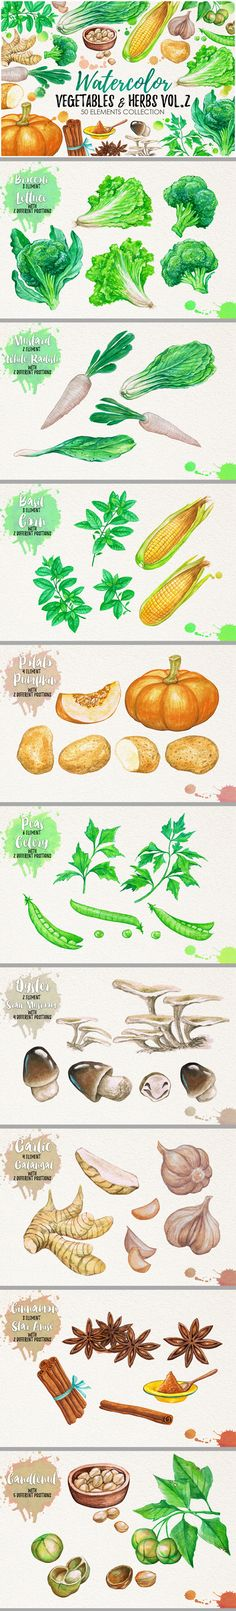 """Check out my @Behance project: """"Watercolor Vegetables, Herbs, Green"""" https://www.behance.net/gallery/46309859/Watercolor-Vegetables-Herbs-Green"""